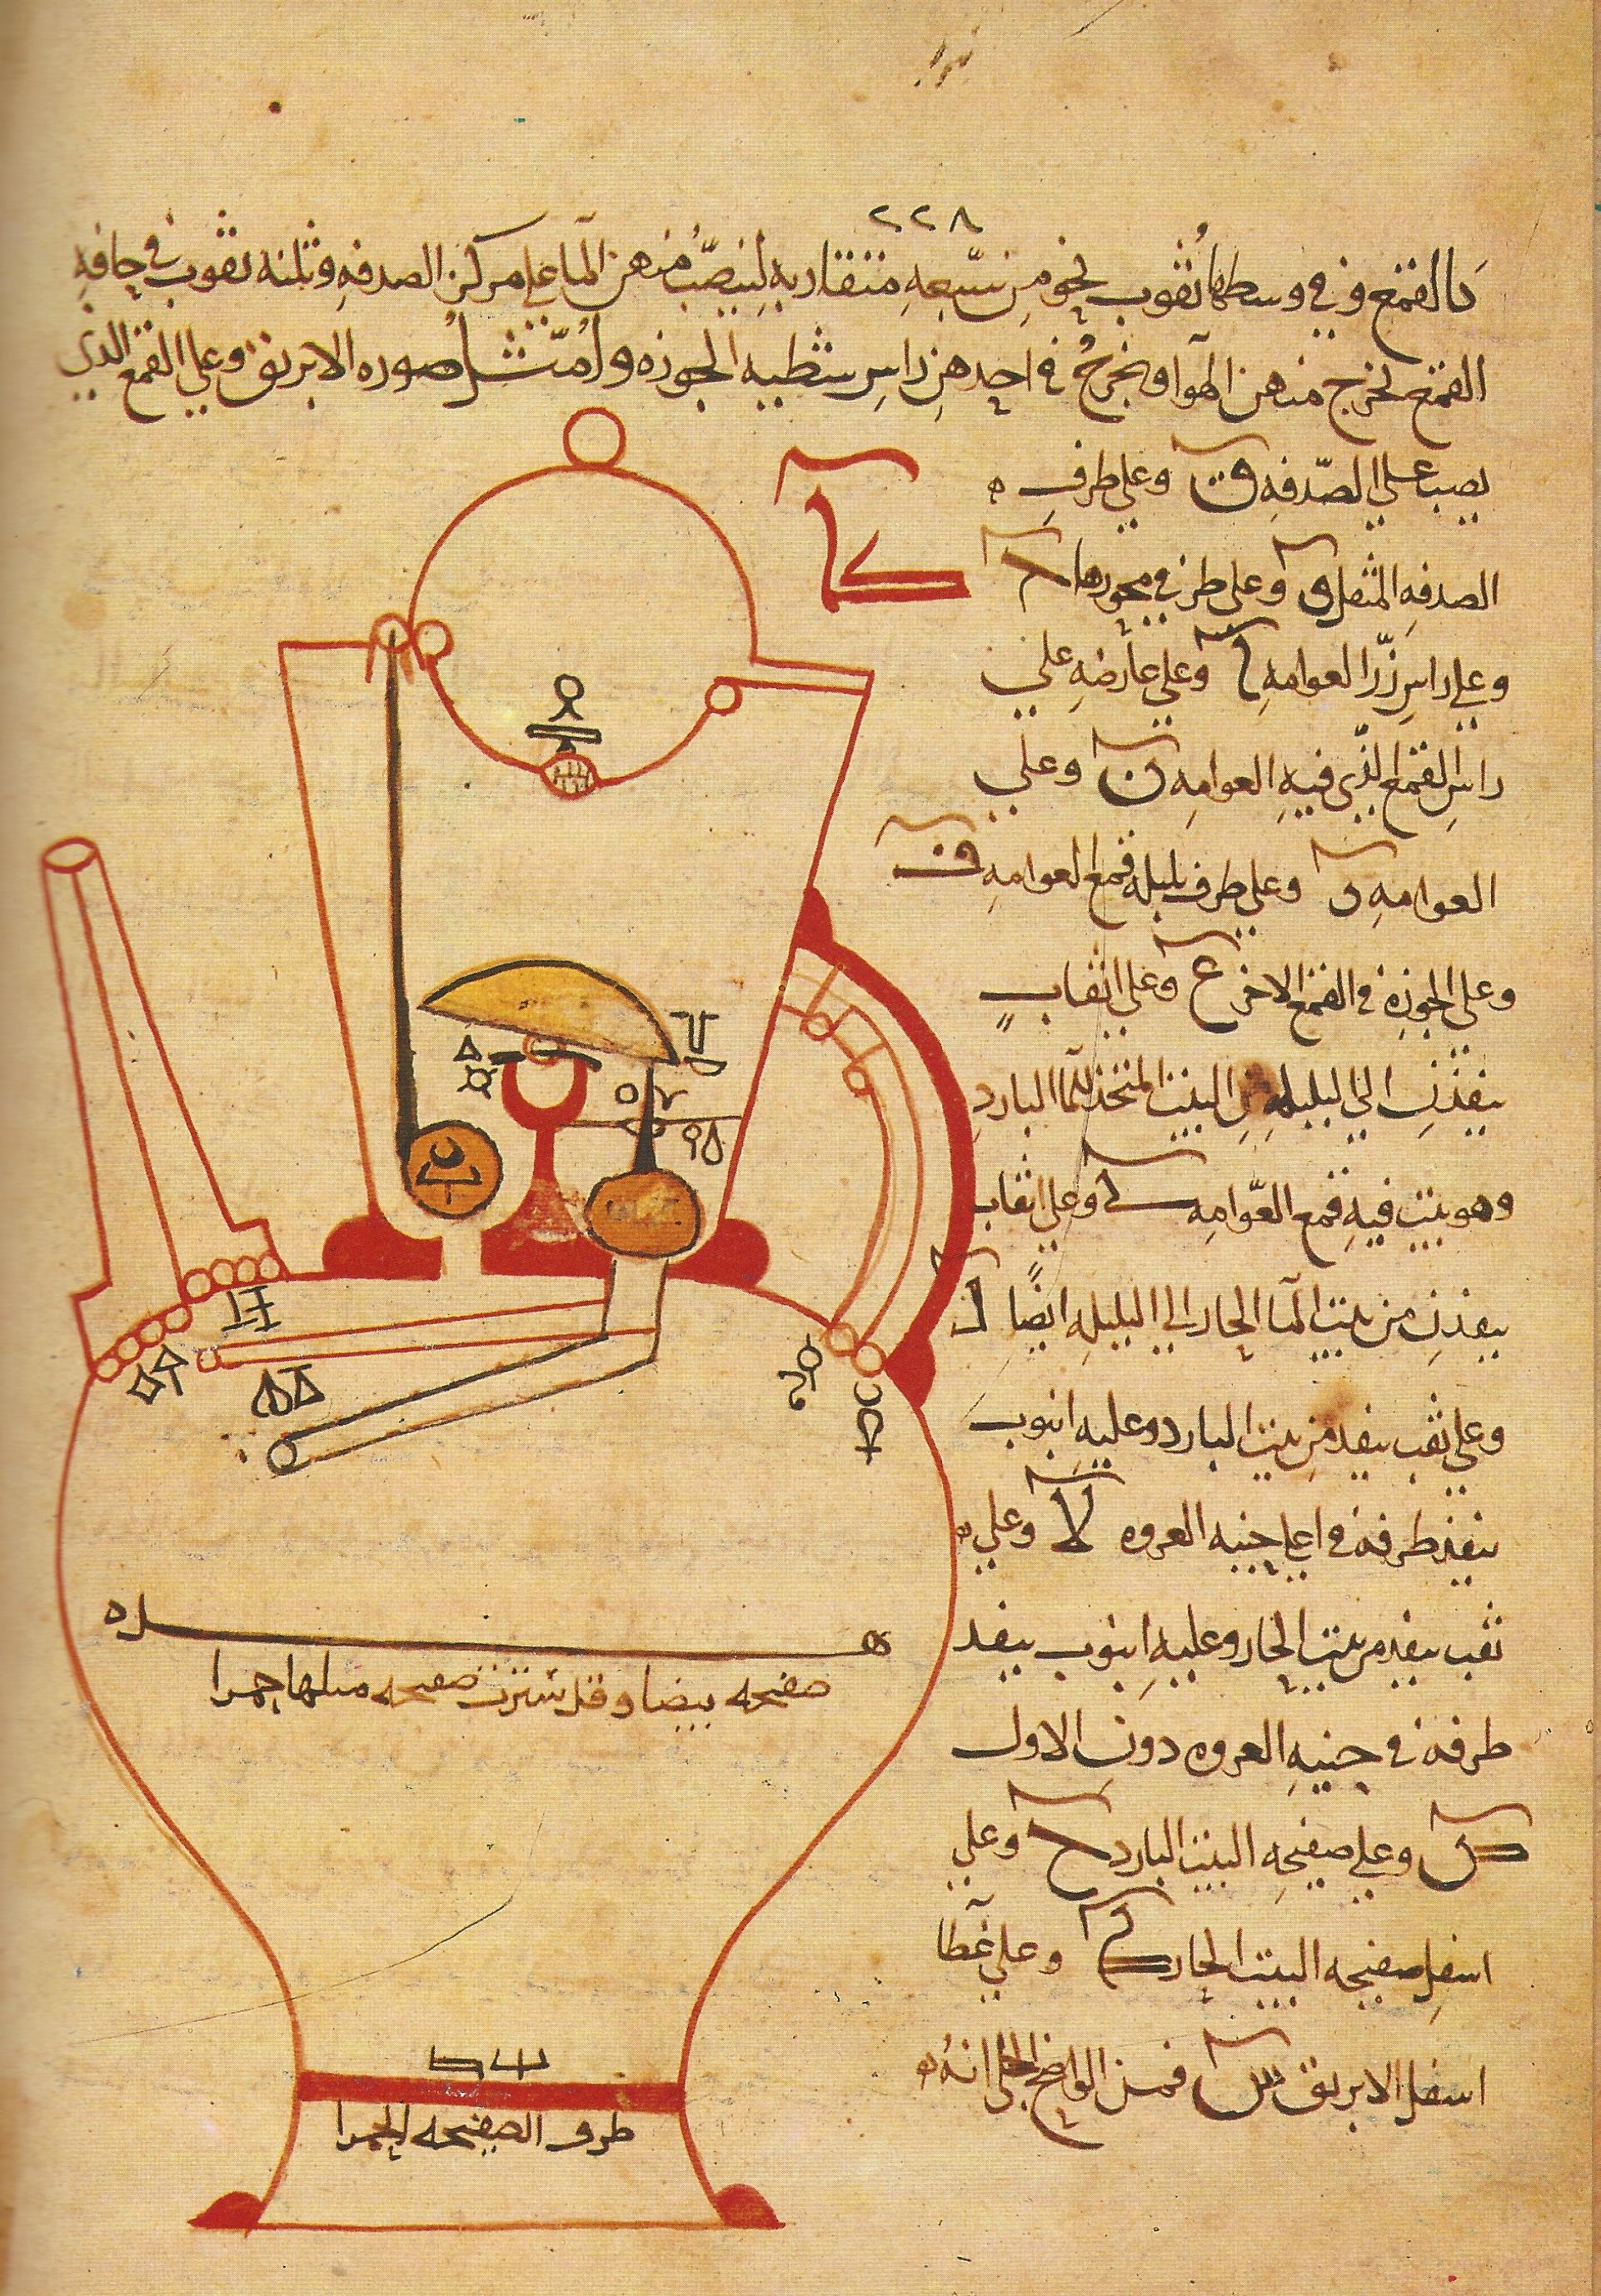 The Book Of Knowledge Ingenious Mechanical Devices Site Is Sailing Ship Diagram Power Mobydick Online Annotation Water Pitcher Variable Temperature 1206 Topkapi Manuscript